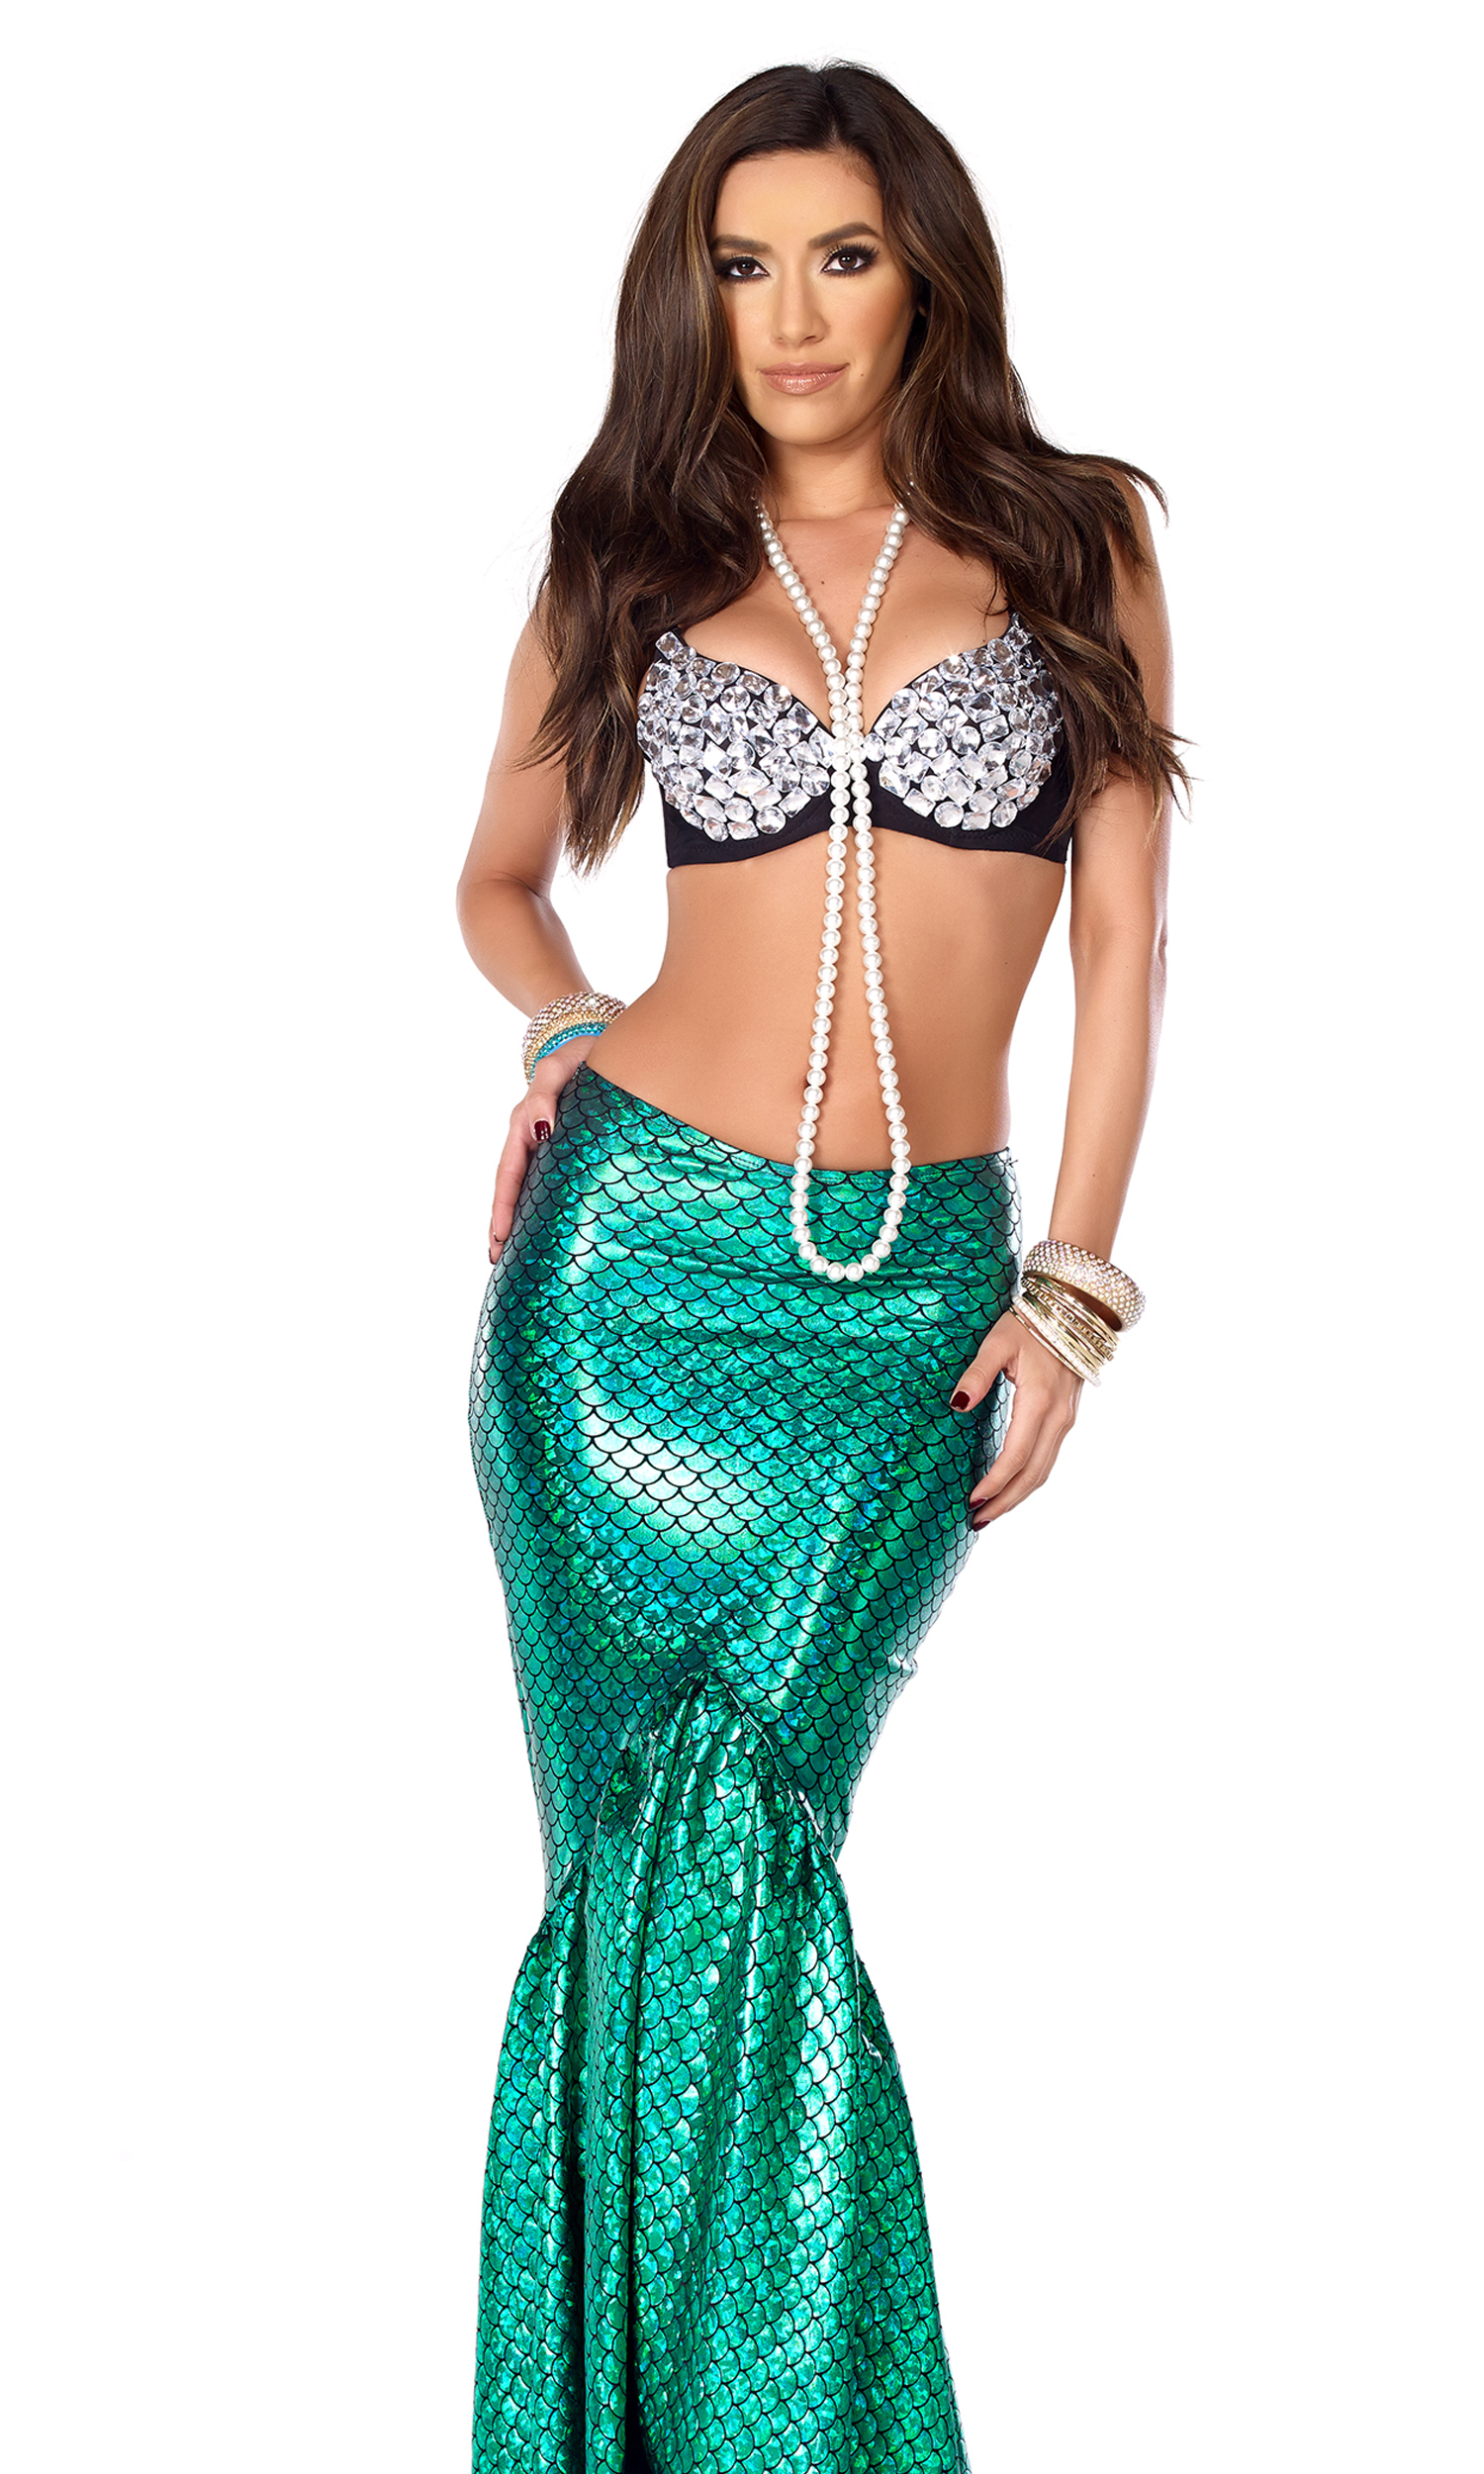 Sexy mermaid outfit